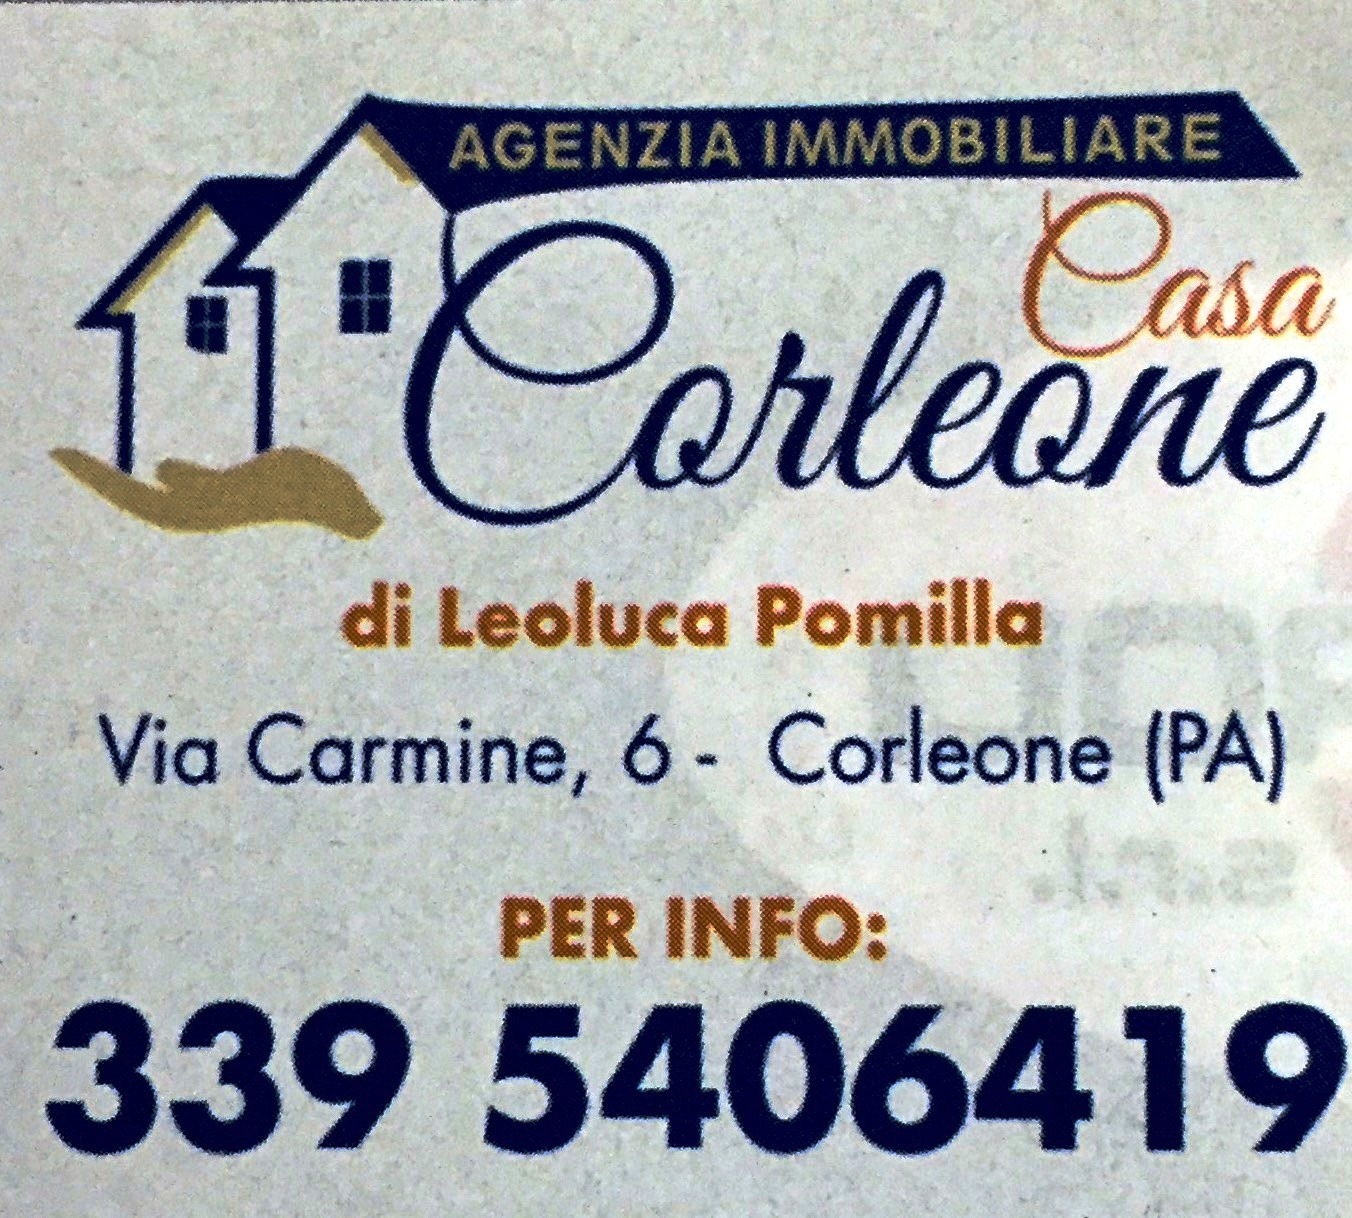 AGENZIA IMMOBILIARE CORLEONE